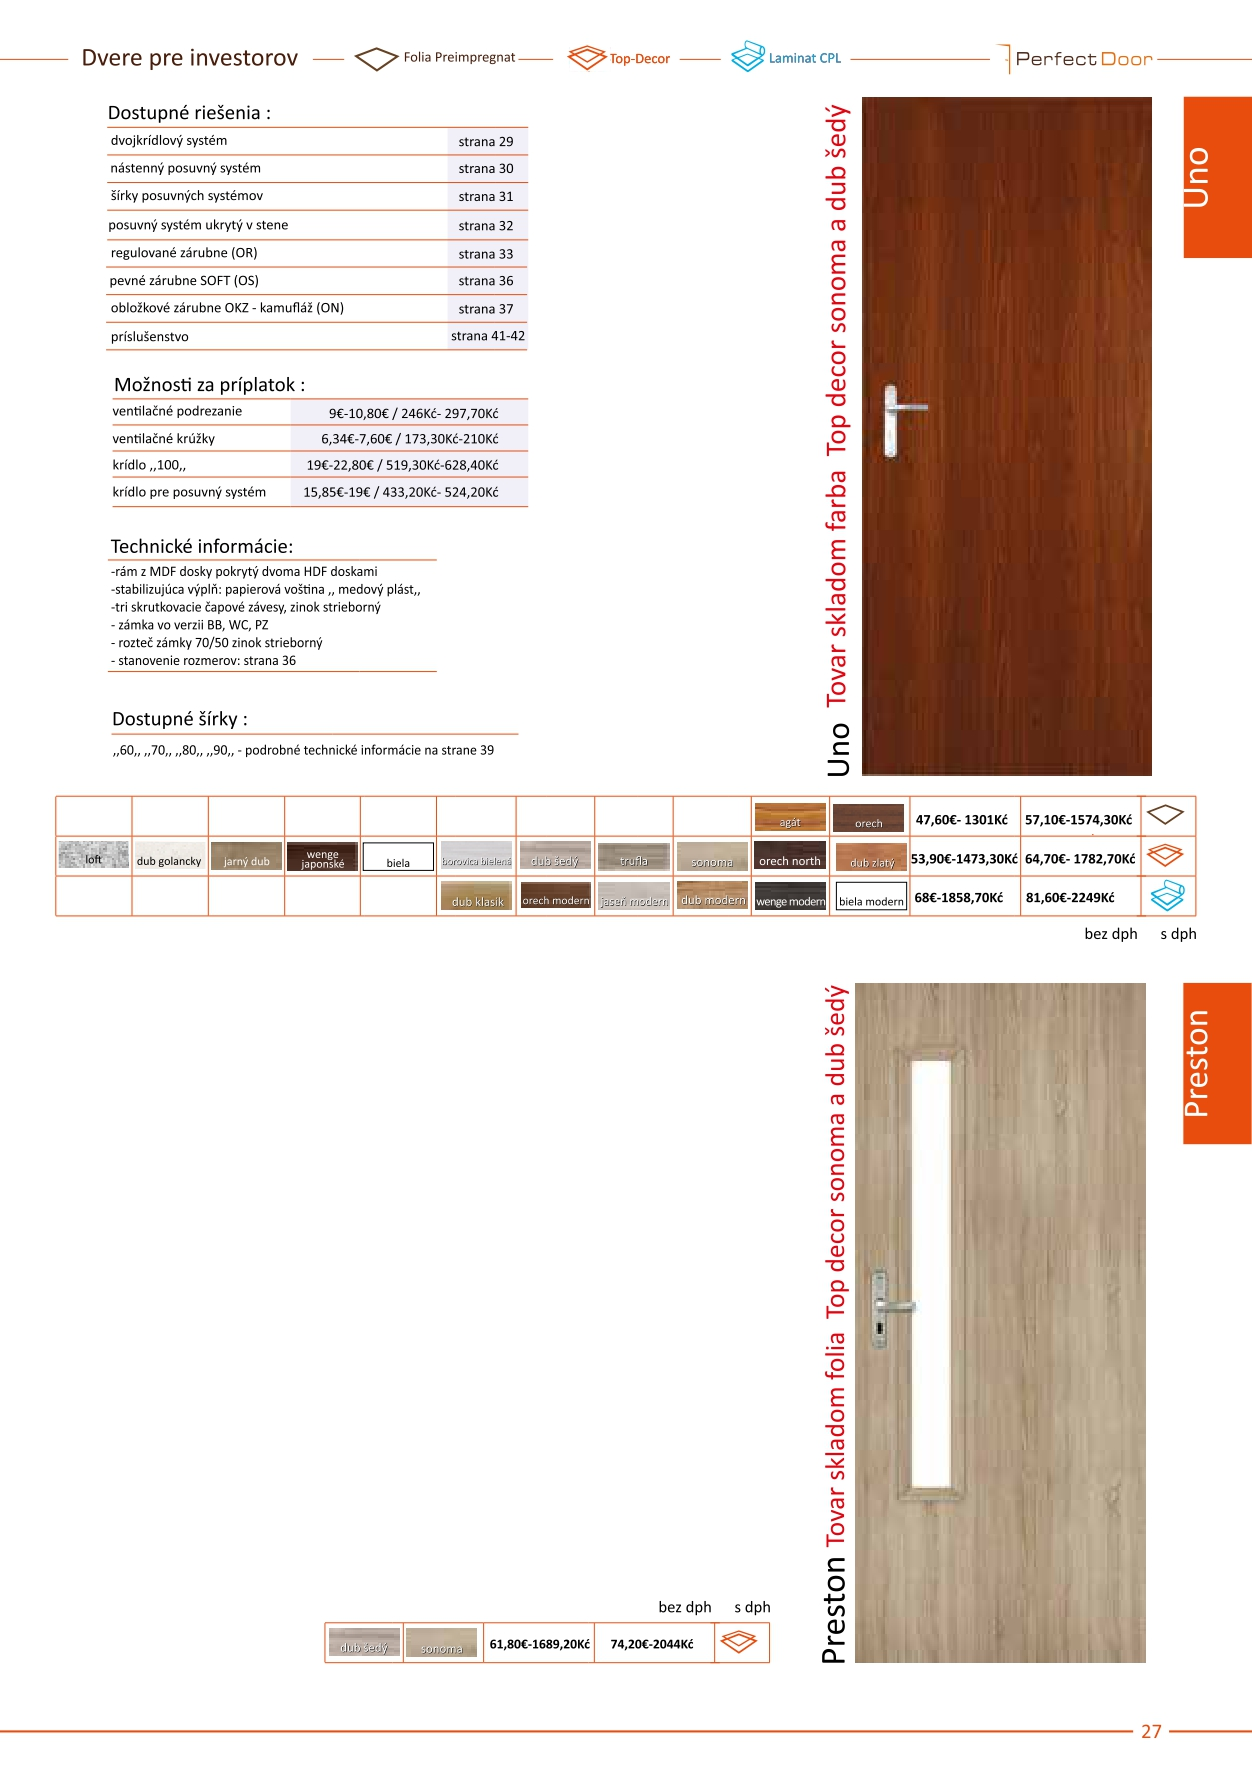 Perfectdoor katalog  1 2019 pages-to-jpg-0027